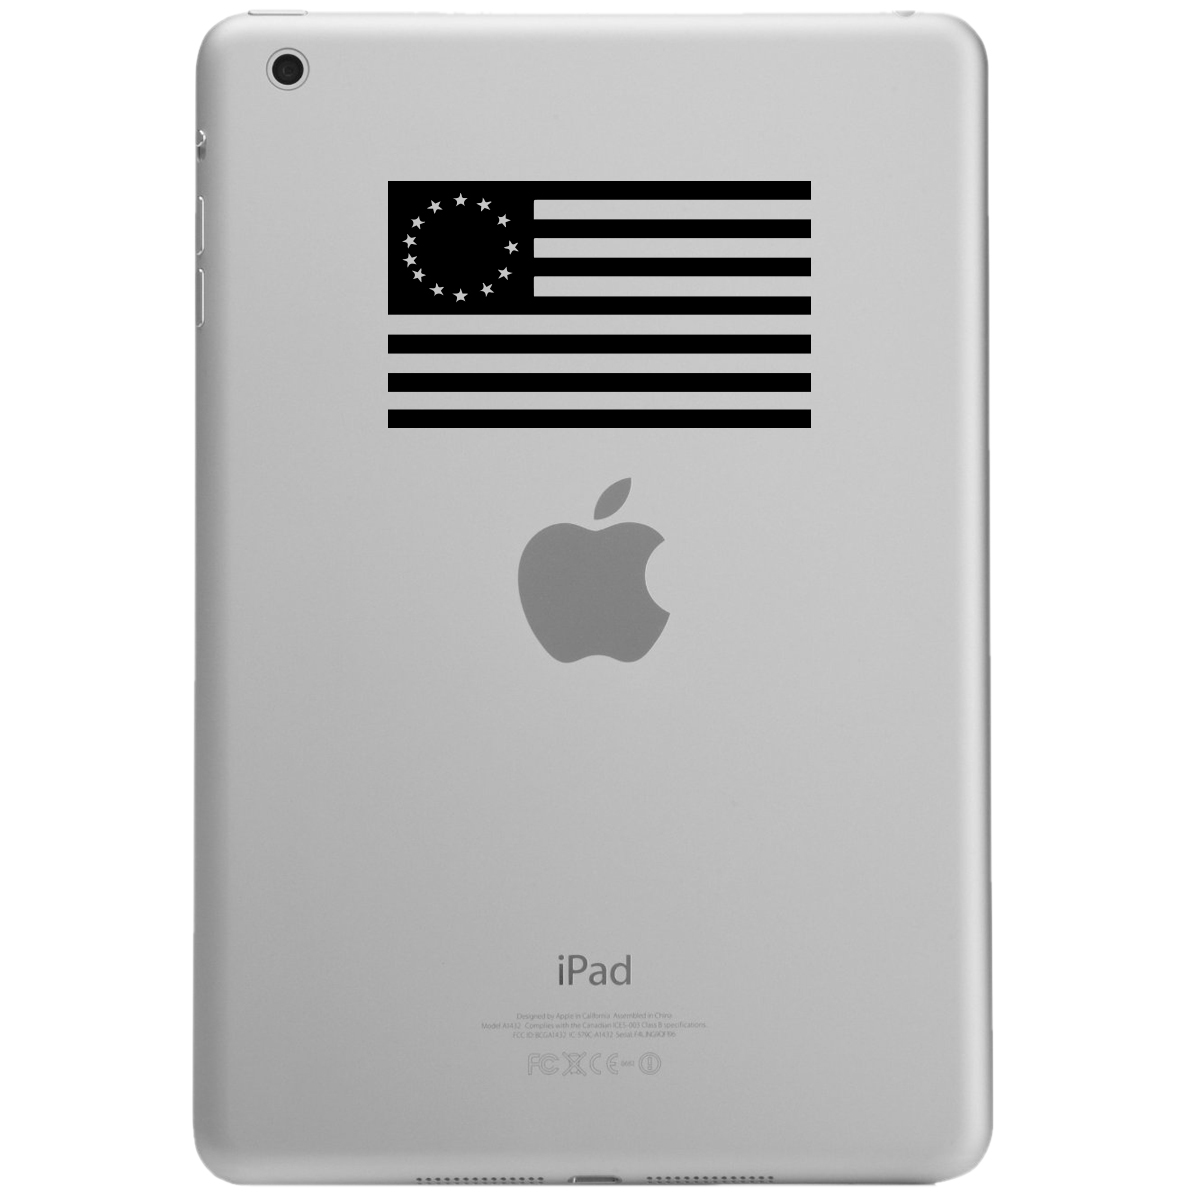 13 Colonies Vintage American Flag iPad Tablet Vinyl Sticker Decal